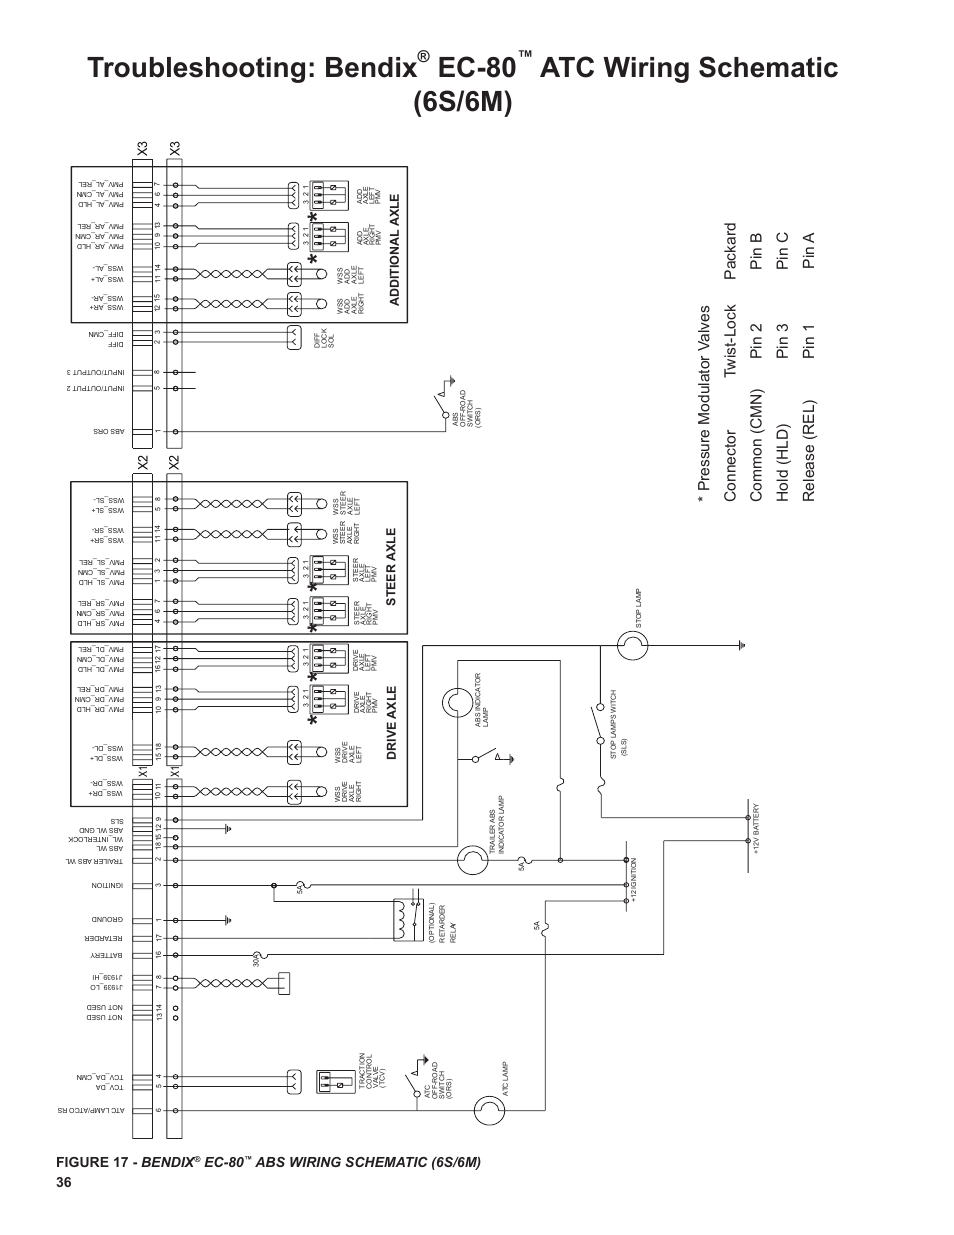 Troubleshooting Bendix Ec 80 Atc Wiring Schematic 6s